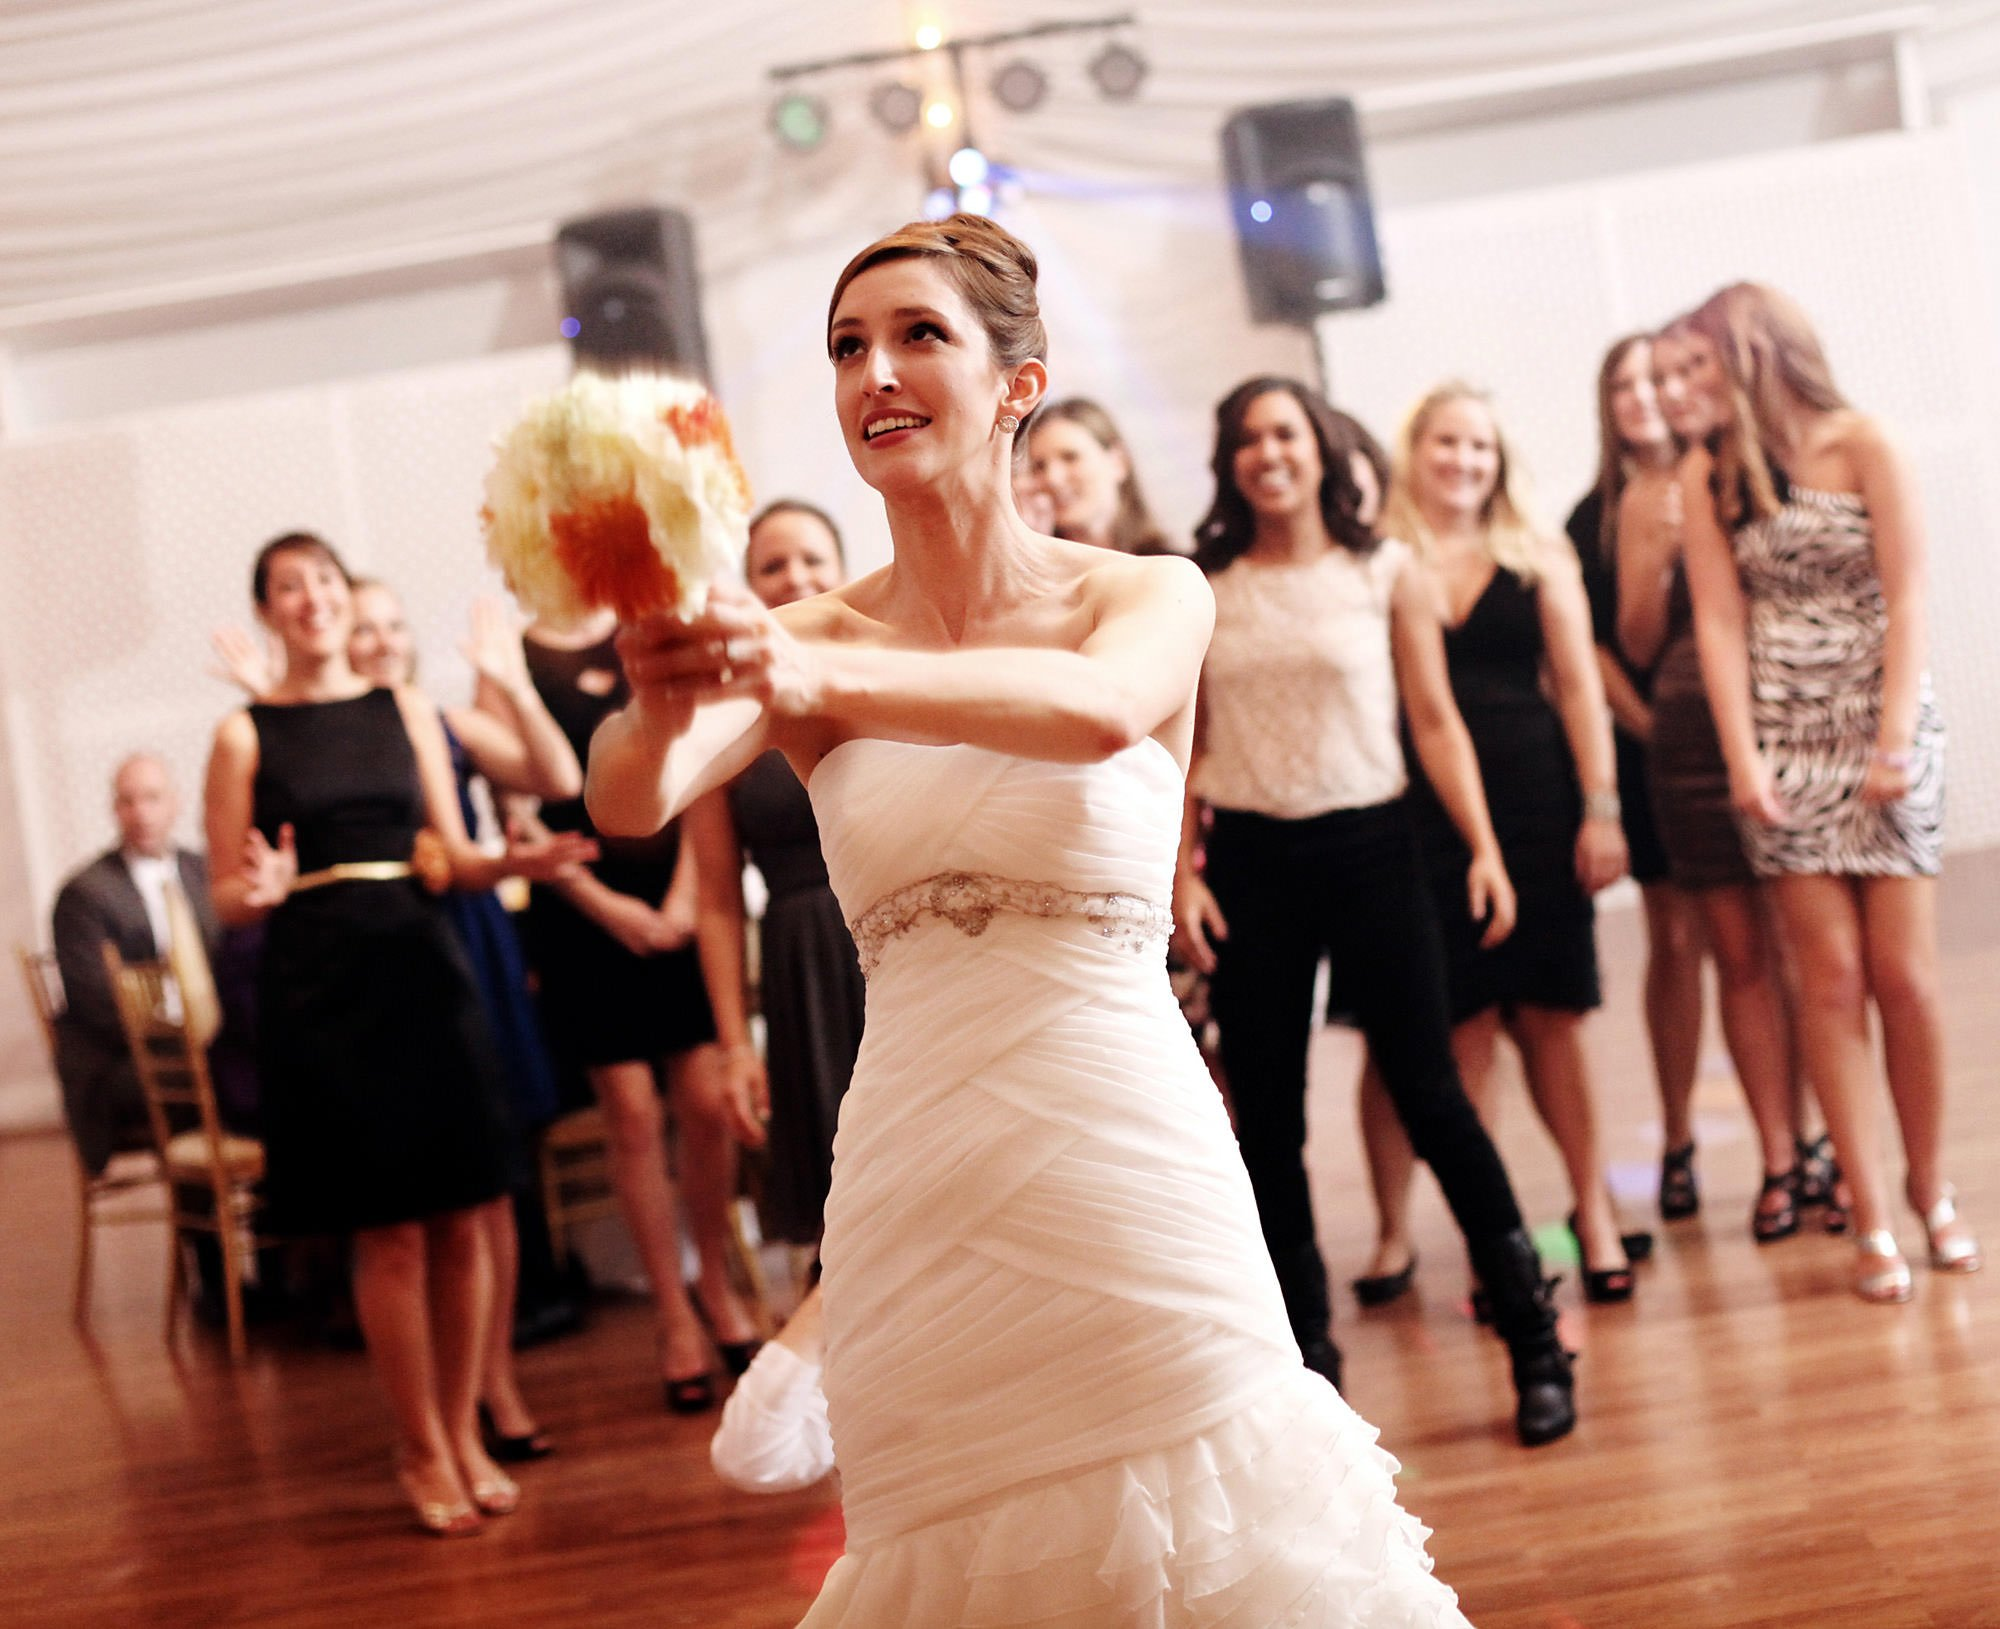 The bride tosses her bouquet during the wedding reception at Celebrations at the Bay.